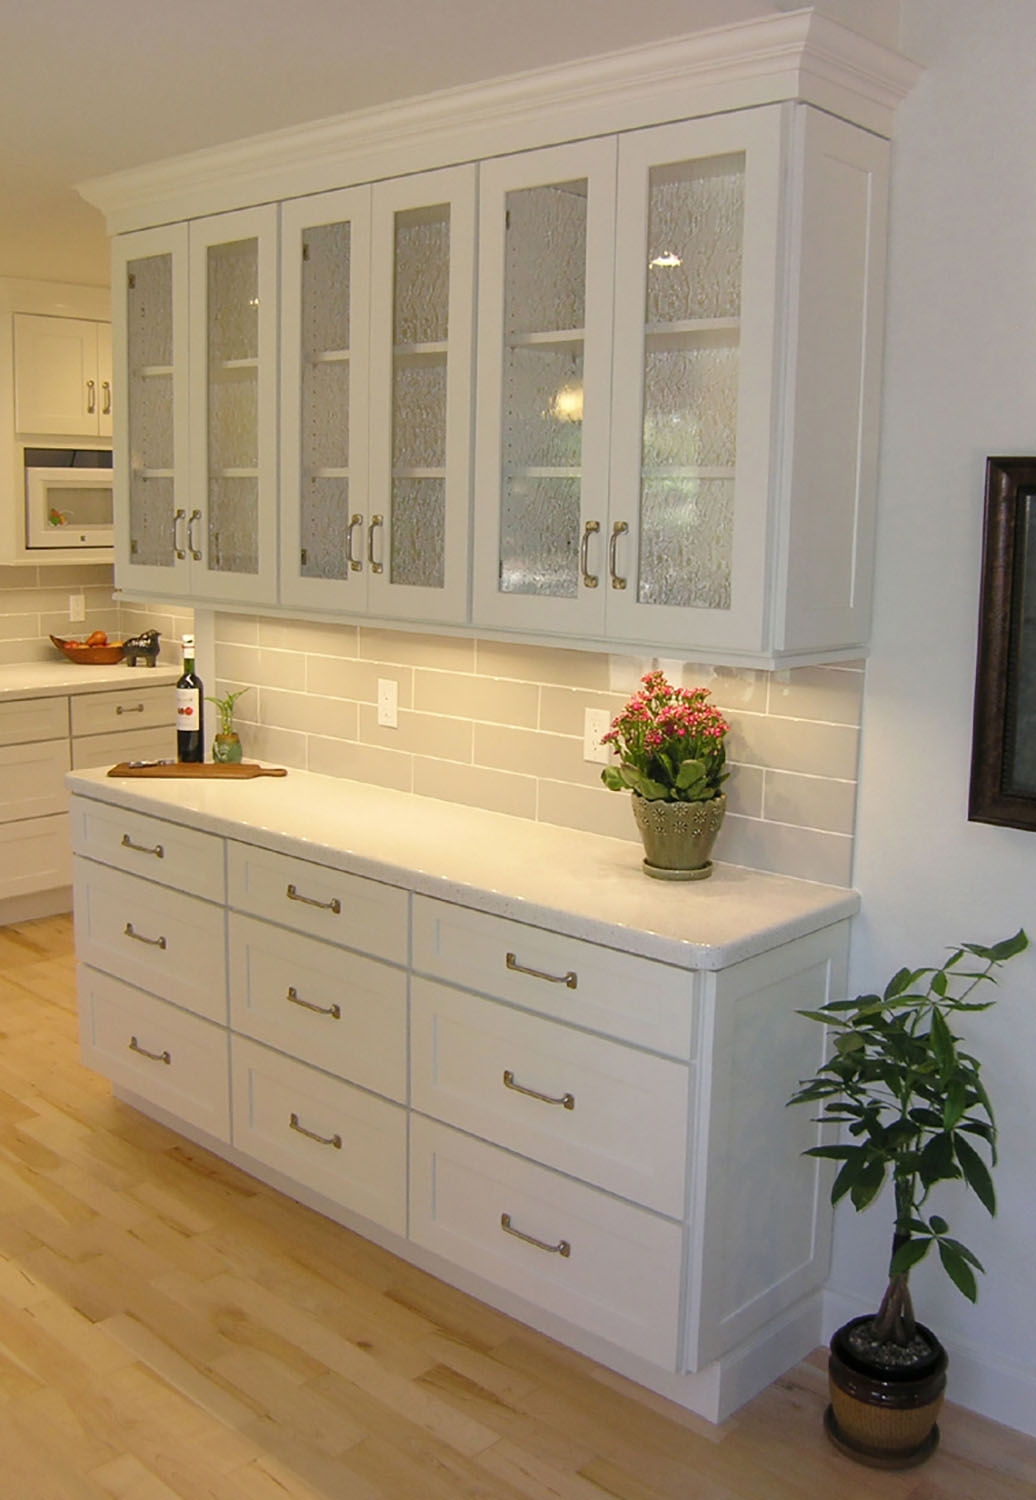 Permalink to Shallow Depth Kitchen Base Cabinets